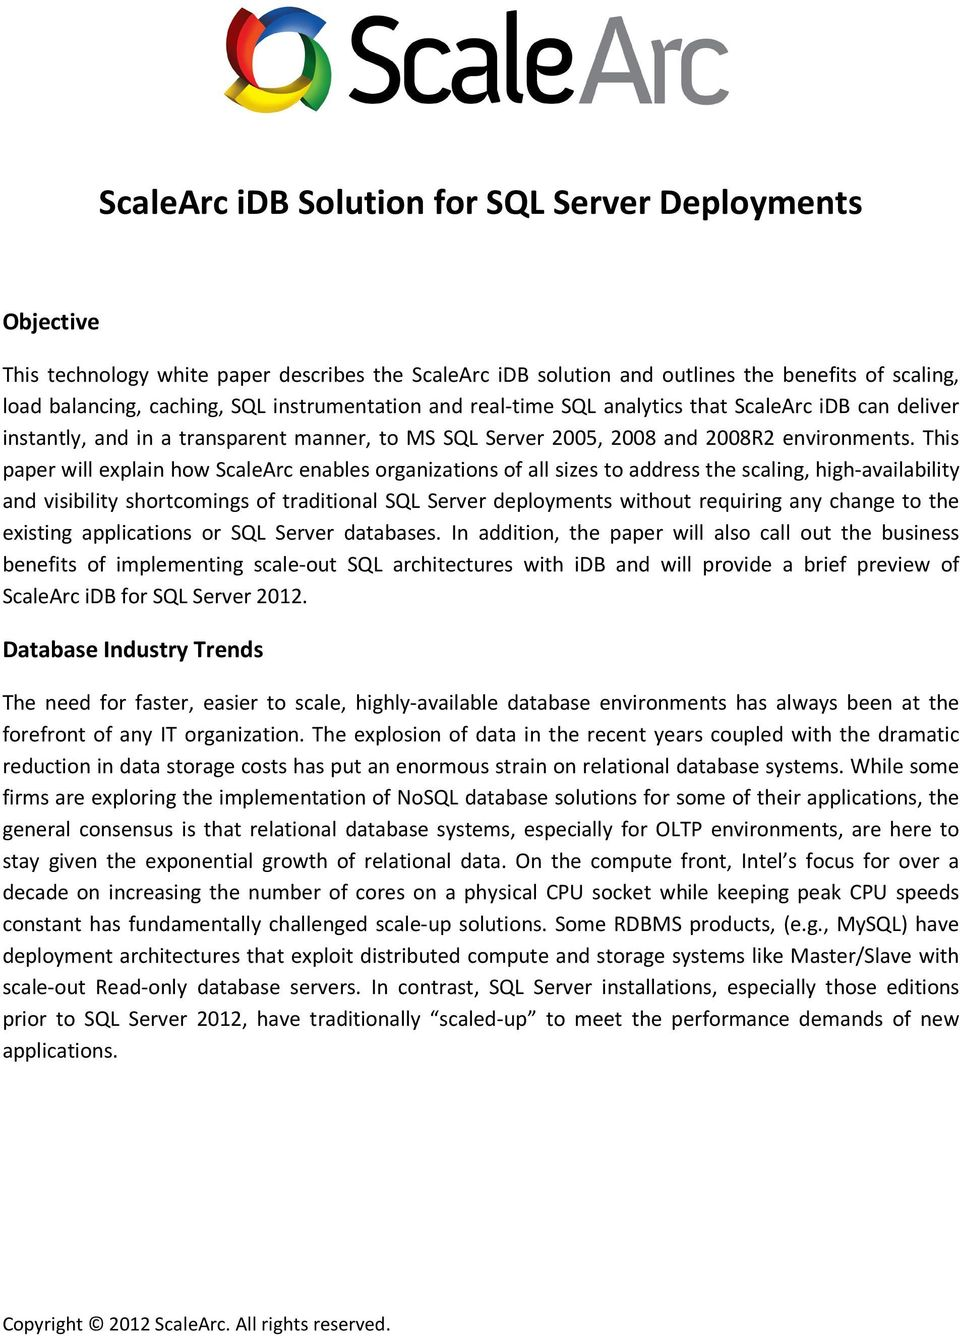 This paper will explain how ScaleArc enables organizations of all sizes to address the scaling, high-availability and visibility shortcomings of traditional SQL Server deployments without requiring